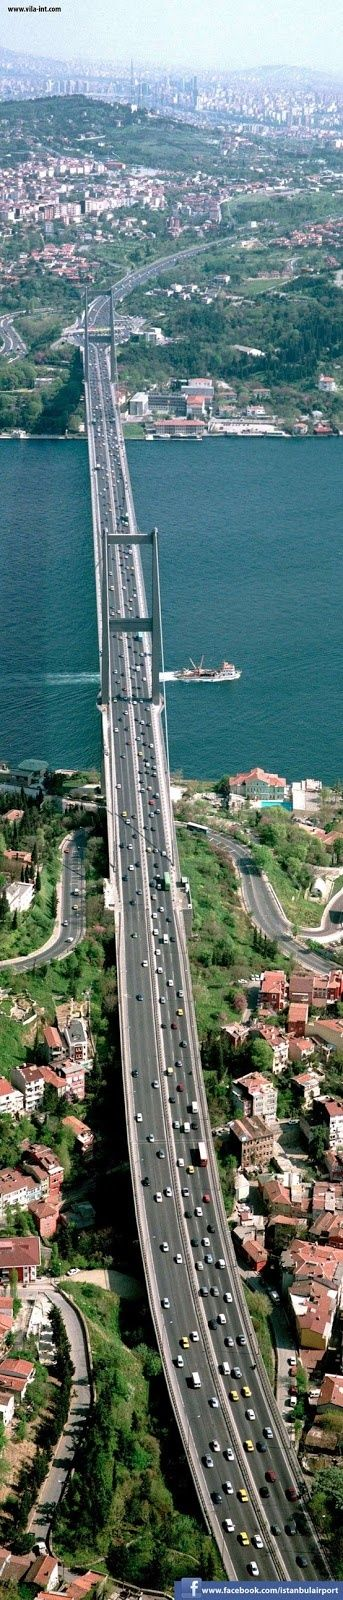 : Bosphorus Bridge, the Bridge that belongs to Two Continents